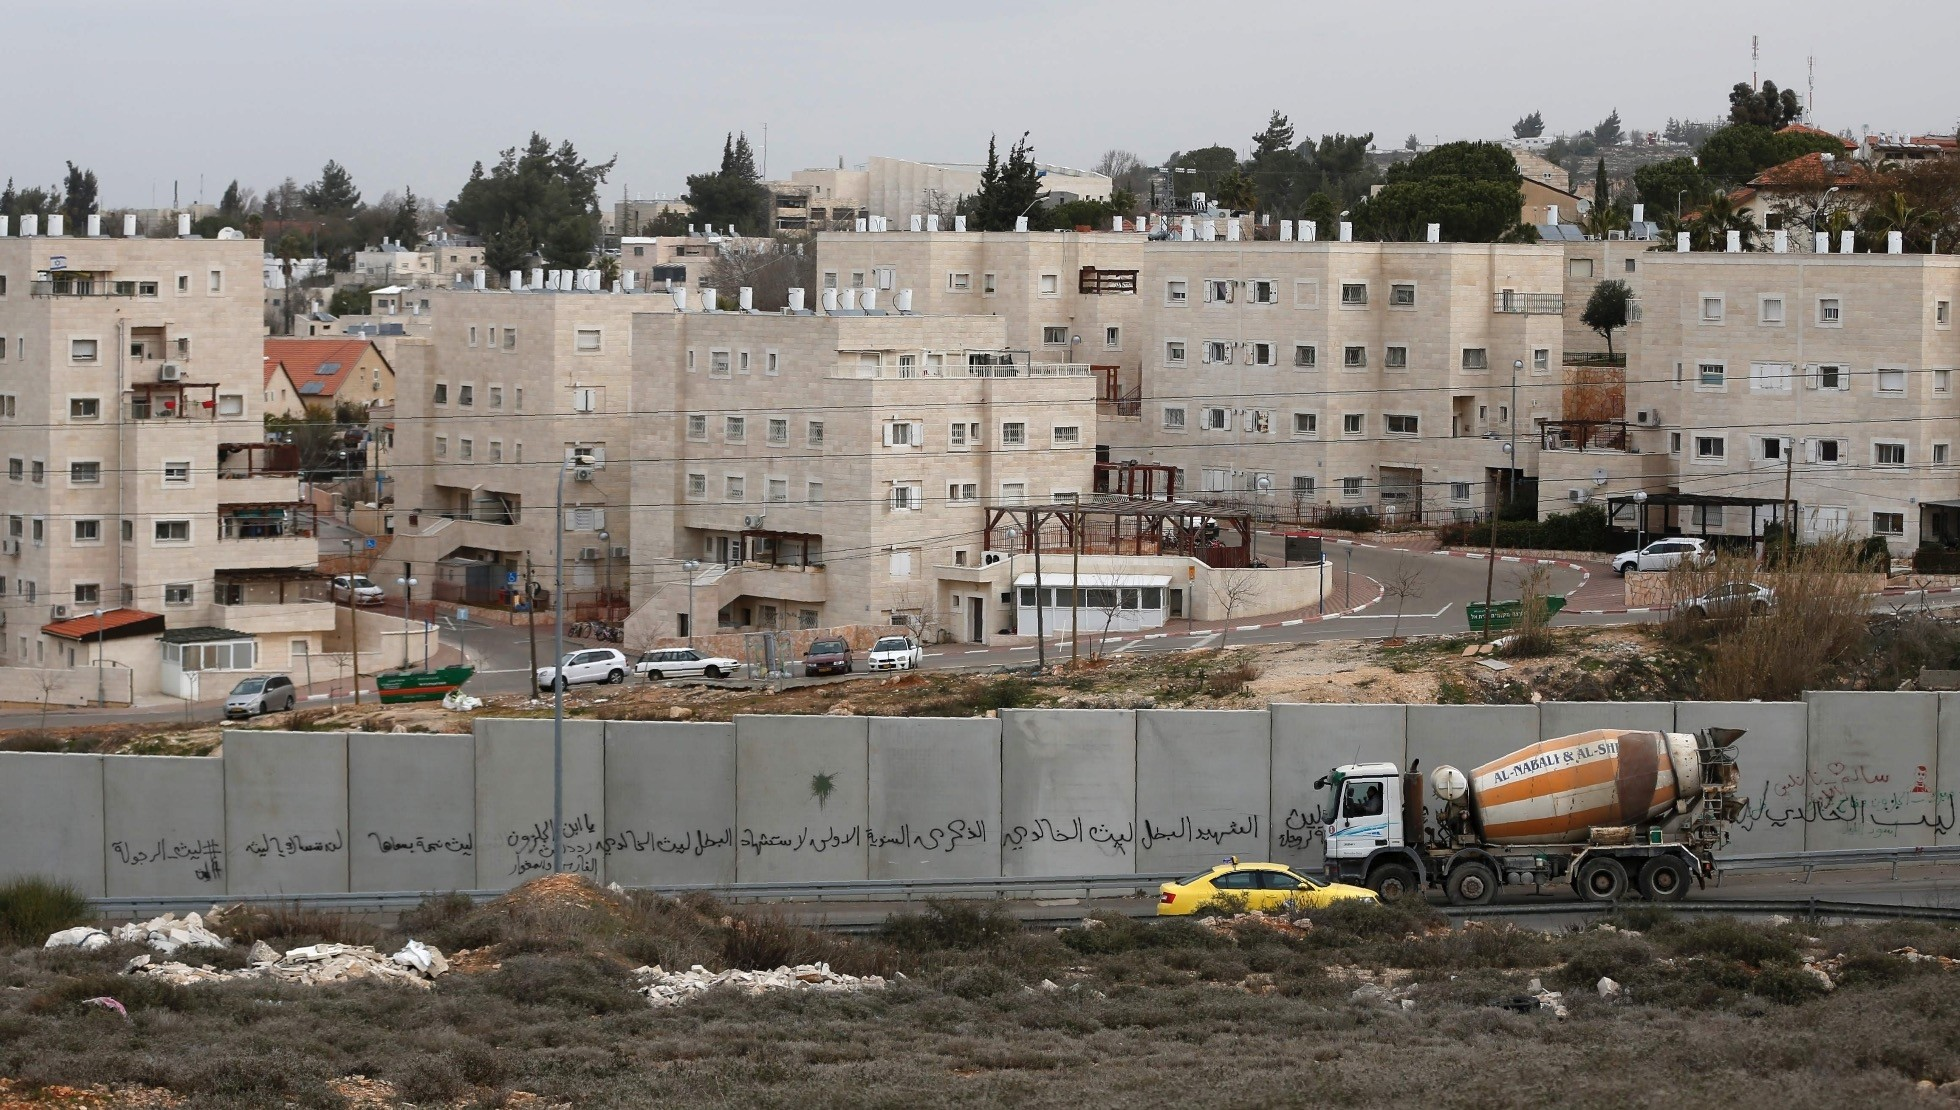 Israeli settlements are considered a violation of international law and major stumbling blocks to peace efforts.